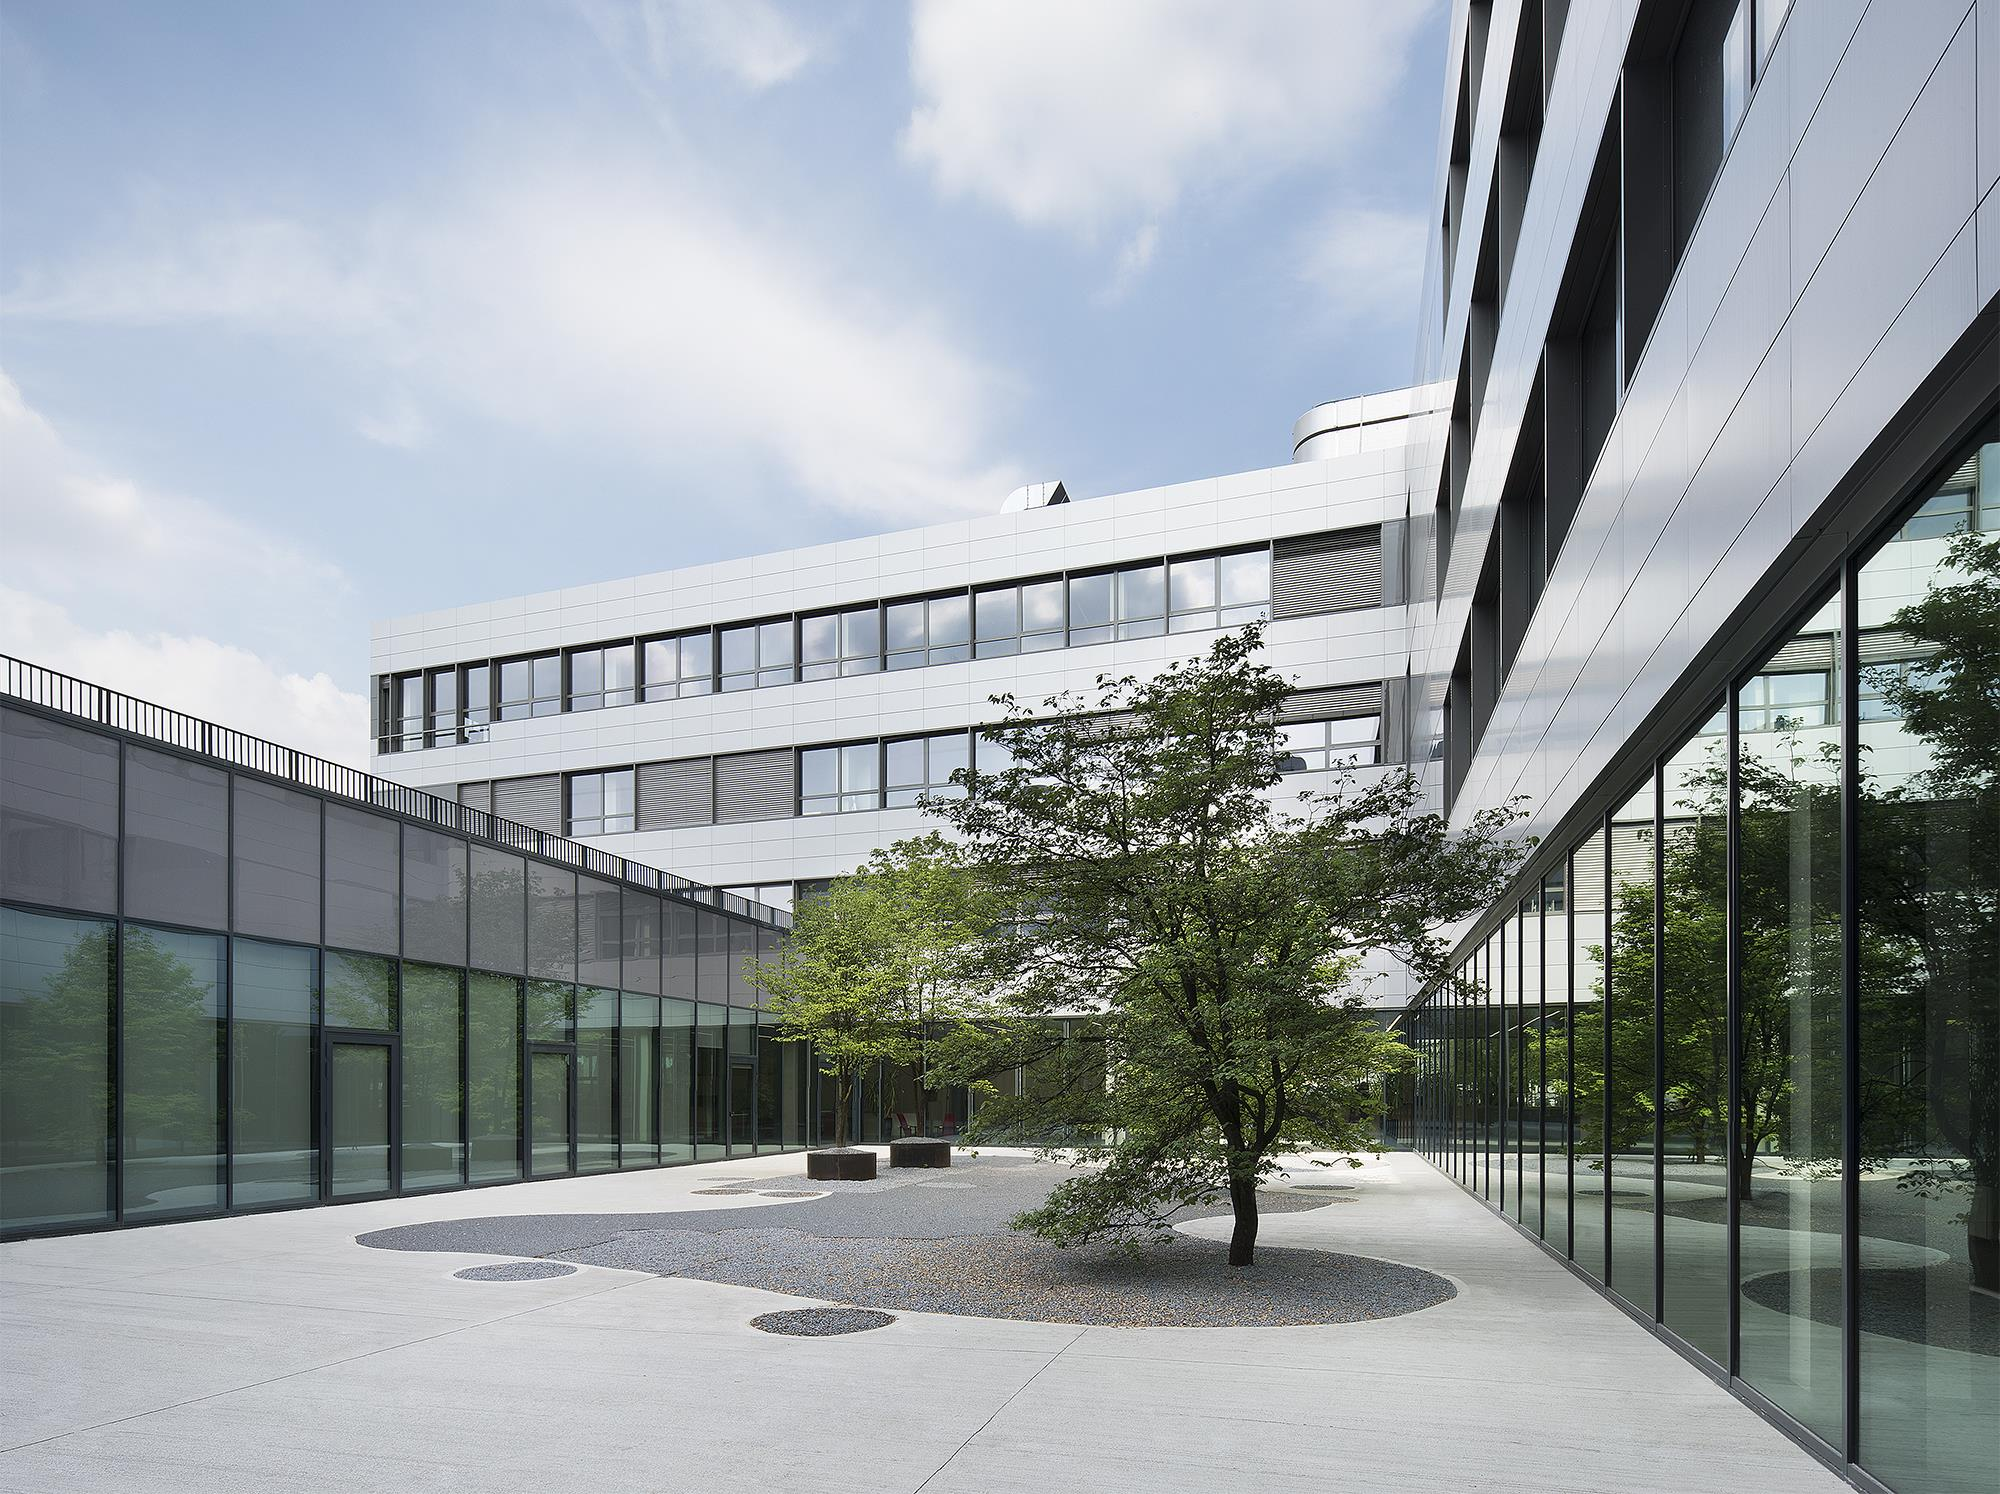 Siemens Headquarter: Photo 1